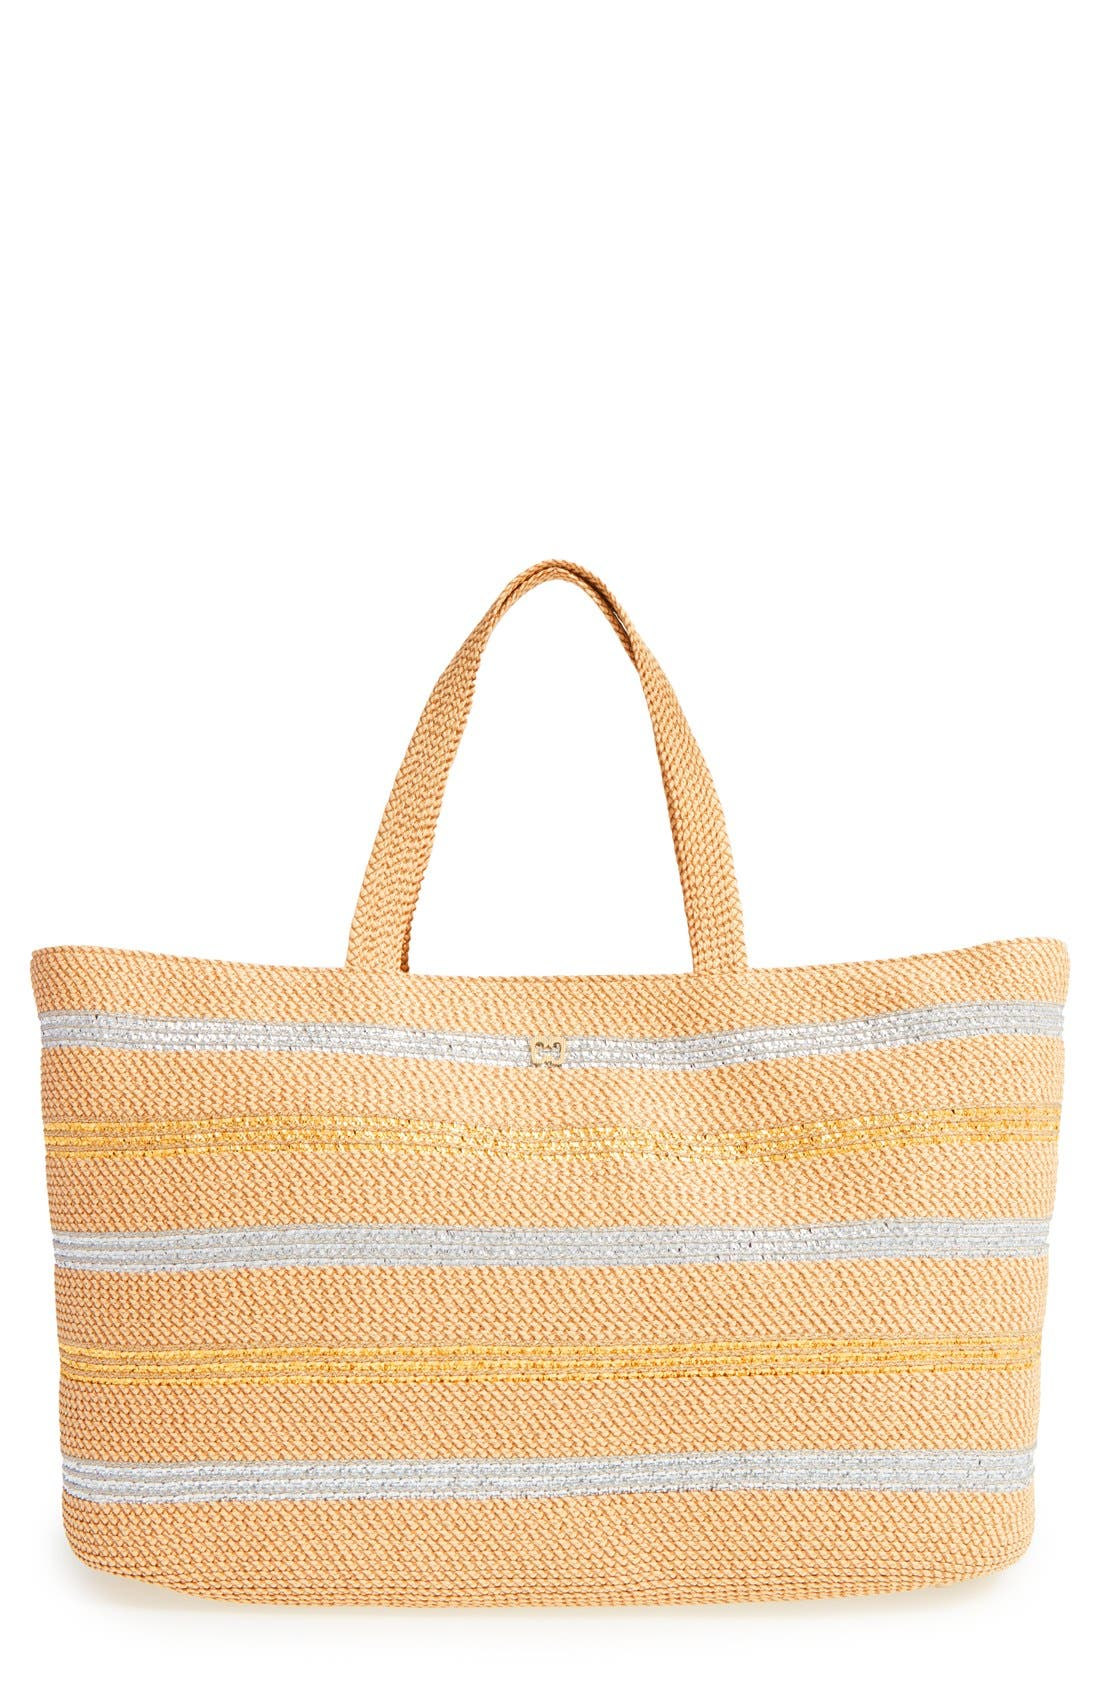 'Sinclair' Squishee<sup>®</sup> Tote,                             Main thumbnail 3, color,